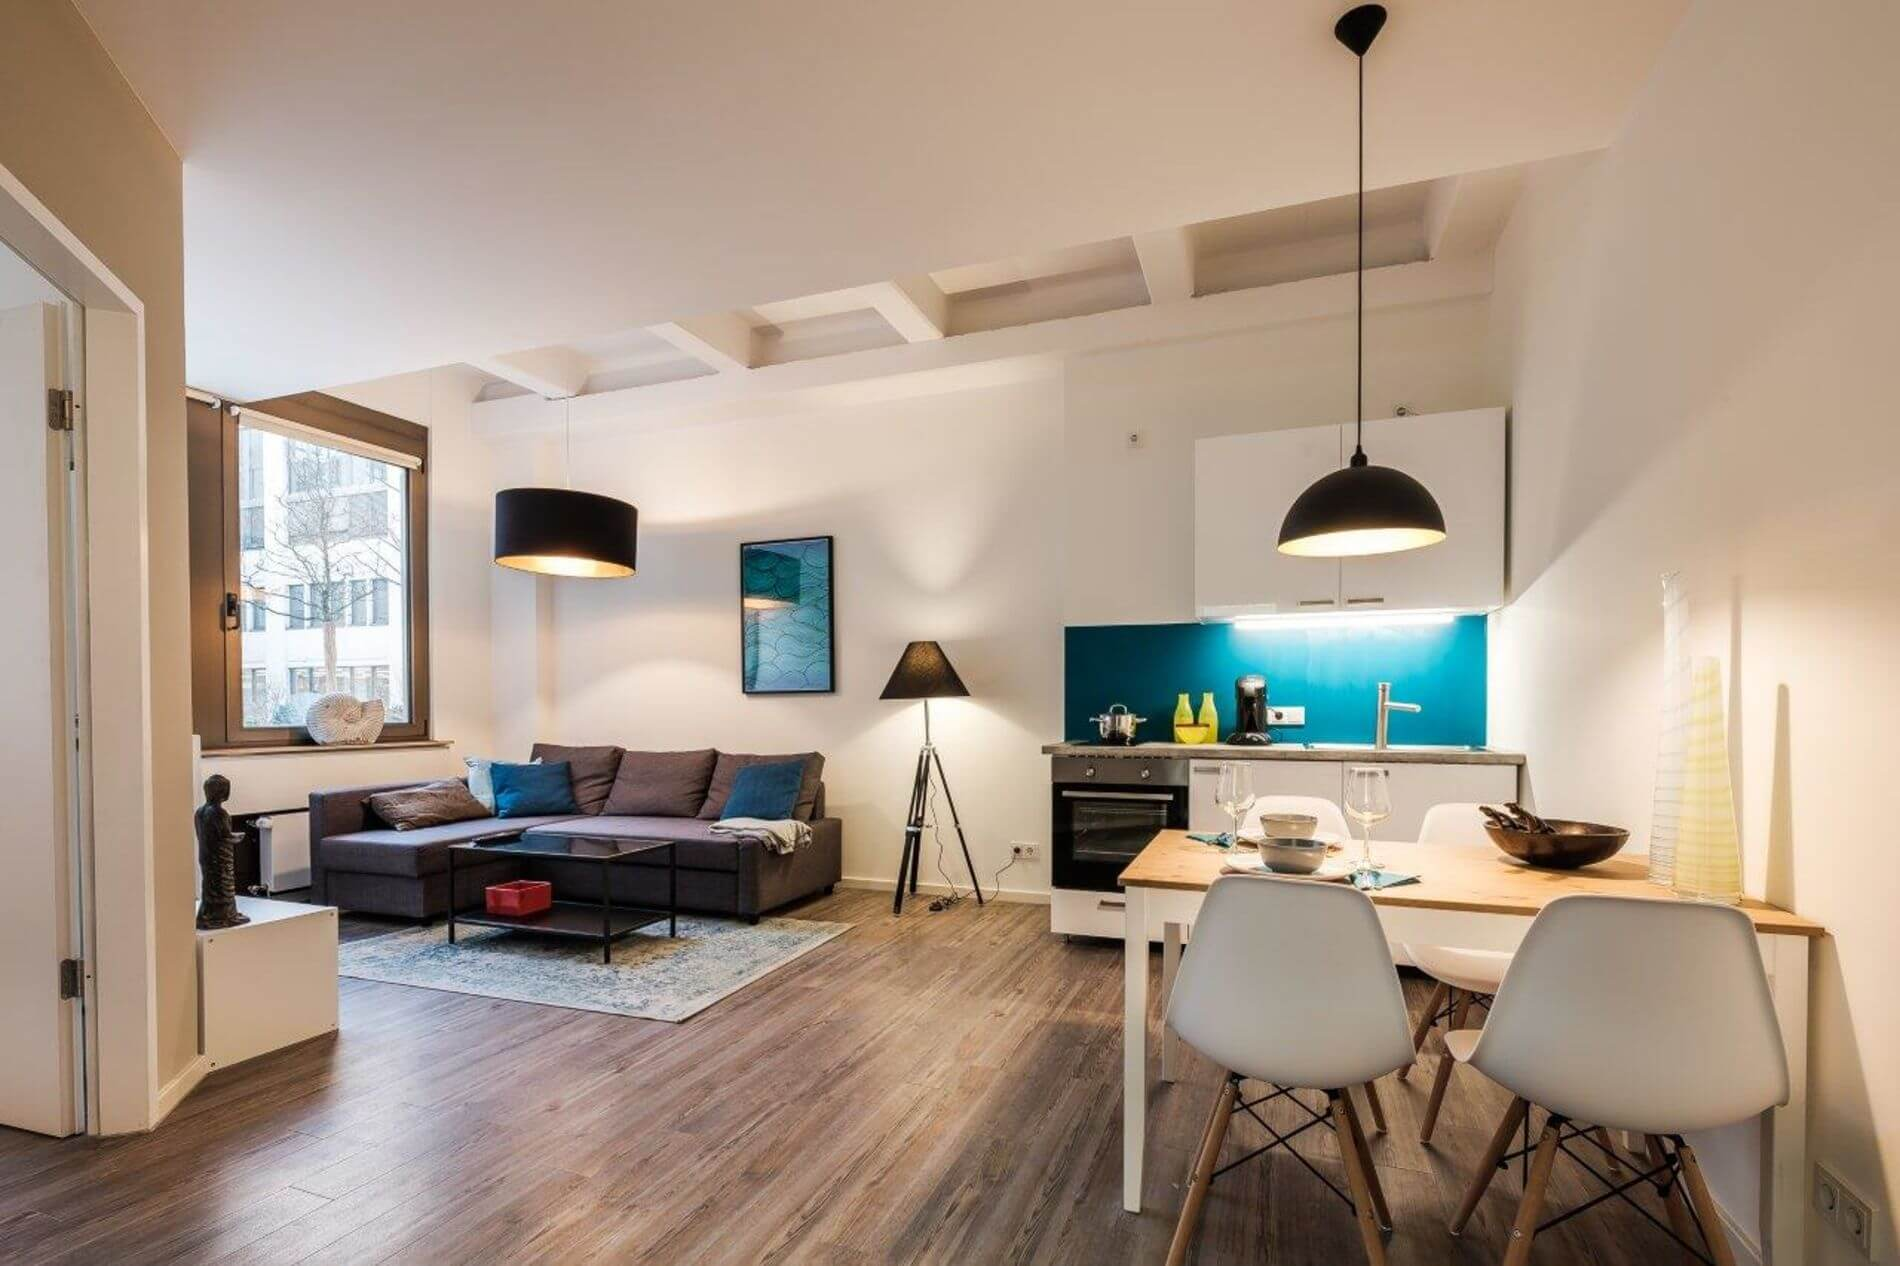 1 bed penthouse apartment in a residential neighborhood in Munich